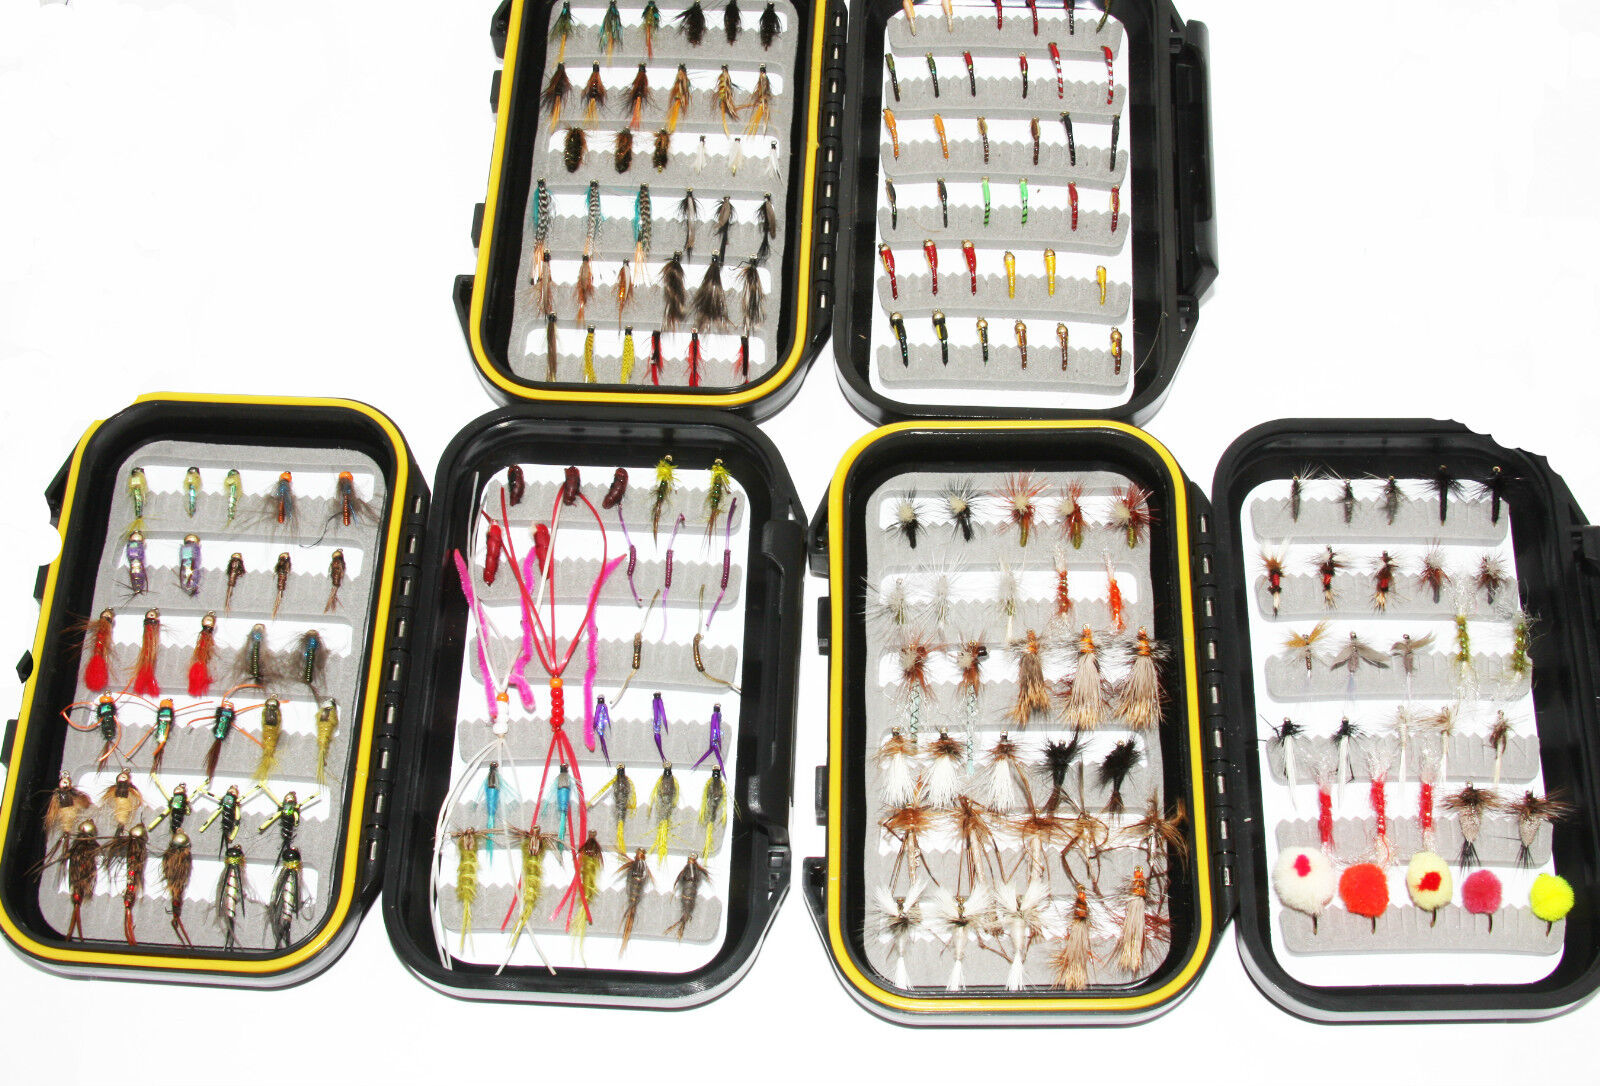 200 Trout Flies Assorted Suitable For River & Stillwater Fly Fishing, 4 Box Set